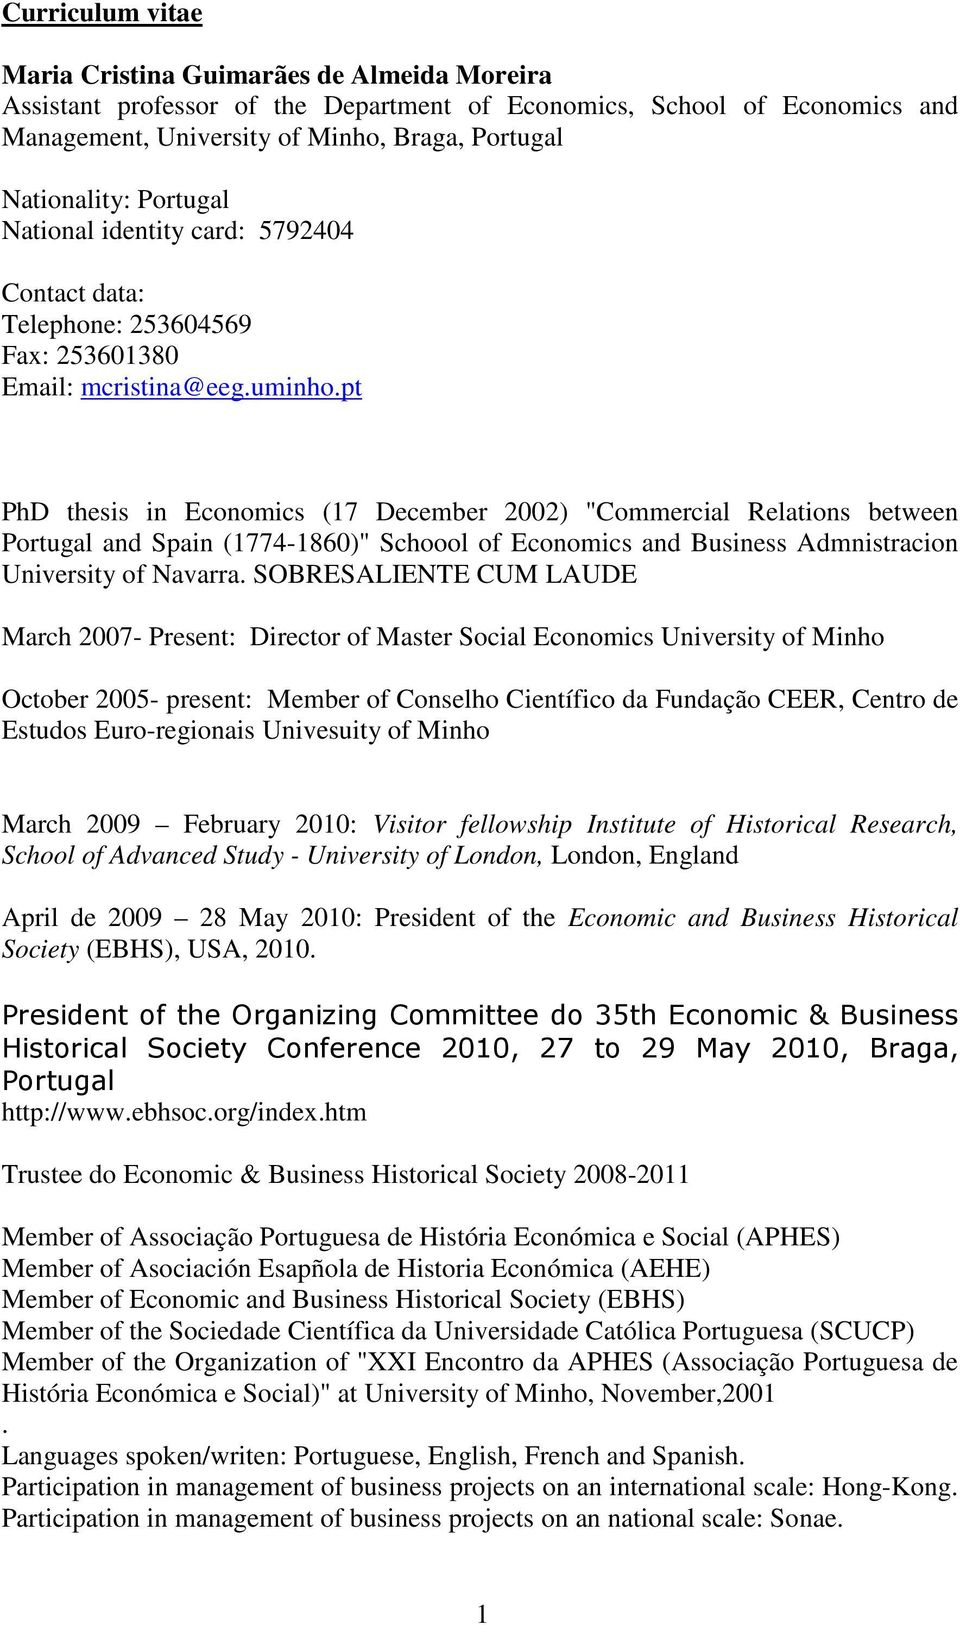 "pt PhD thesis in Economics (17 December 2002) ""Commercial Relations between Portugal and Spain (1774-1860)"" Schoool of Economics and Business Admnistracion University of Navarra."